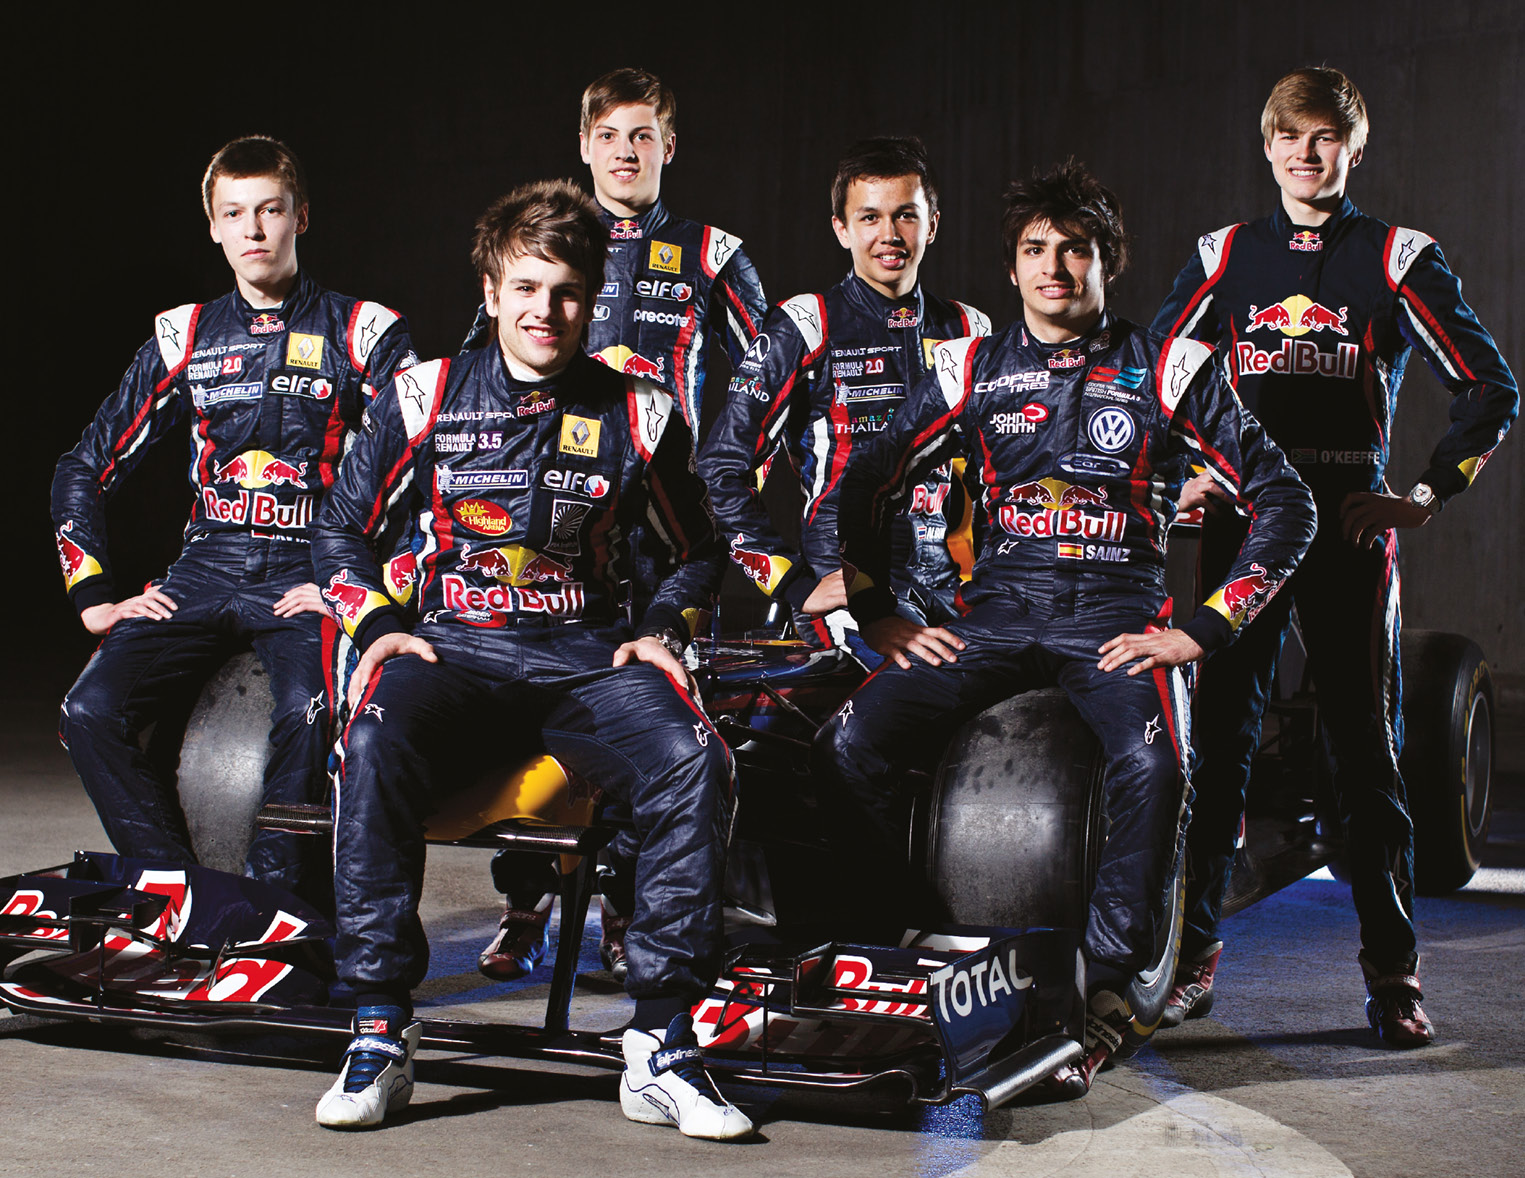 Red Bull Junior Team, class of 2012: From left: Daniil Kvyat , Lewis Williamson, Stefan Wackerbauer, Alex Albon, Carlos Sainz Jr and Callan O'Keeffe. Only Kvyat and Albon are still with the brand